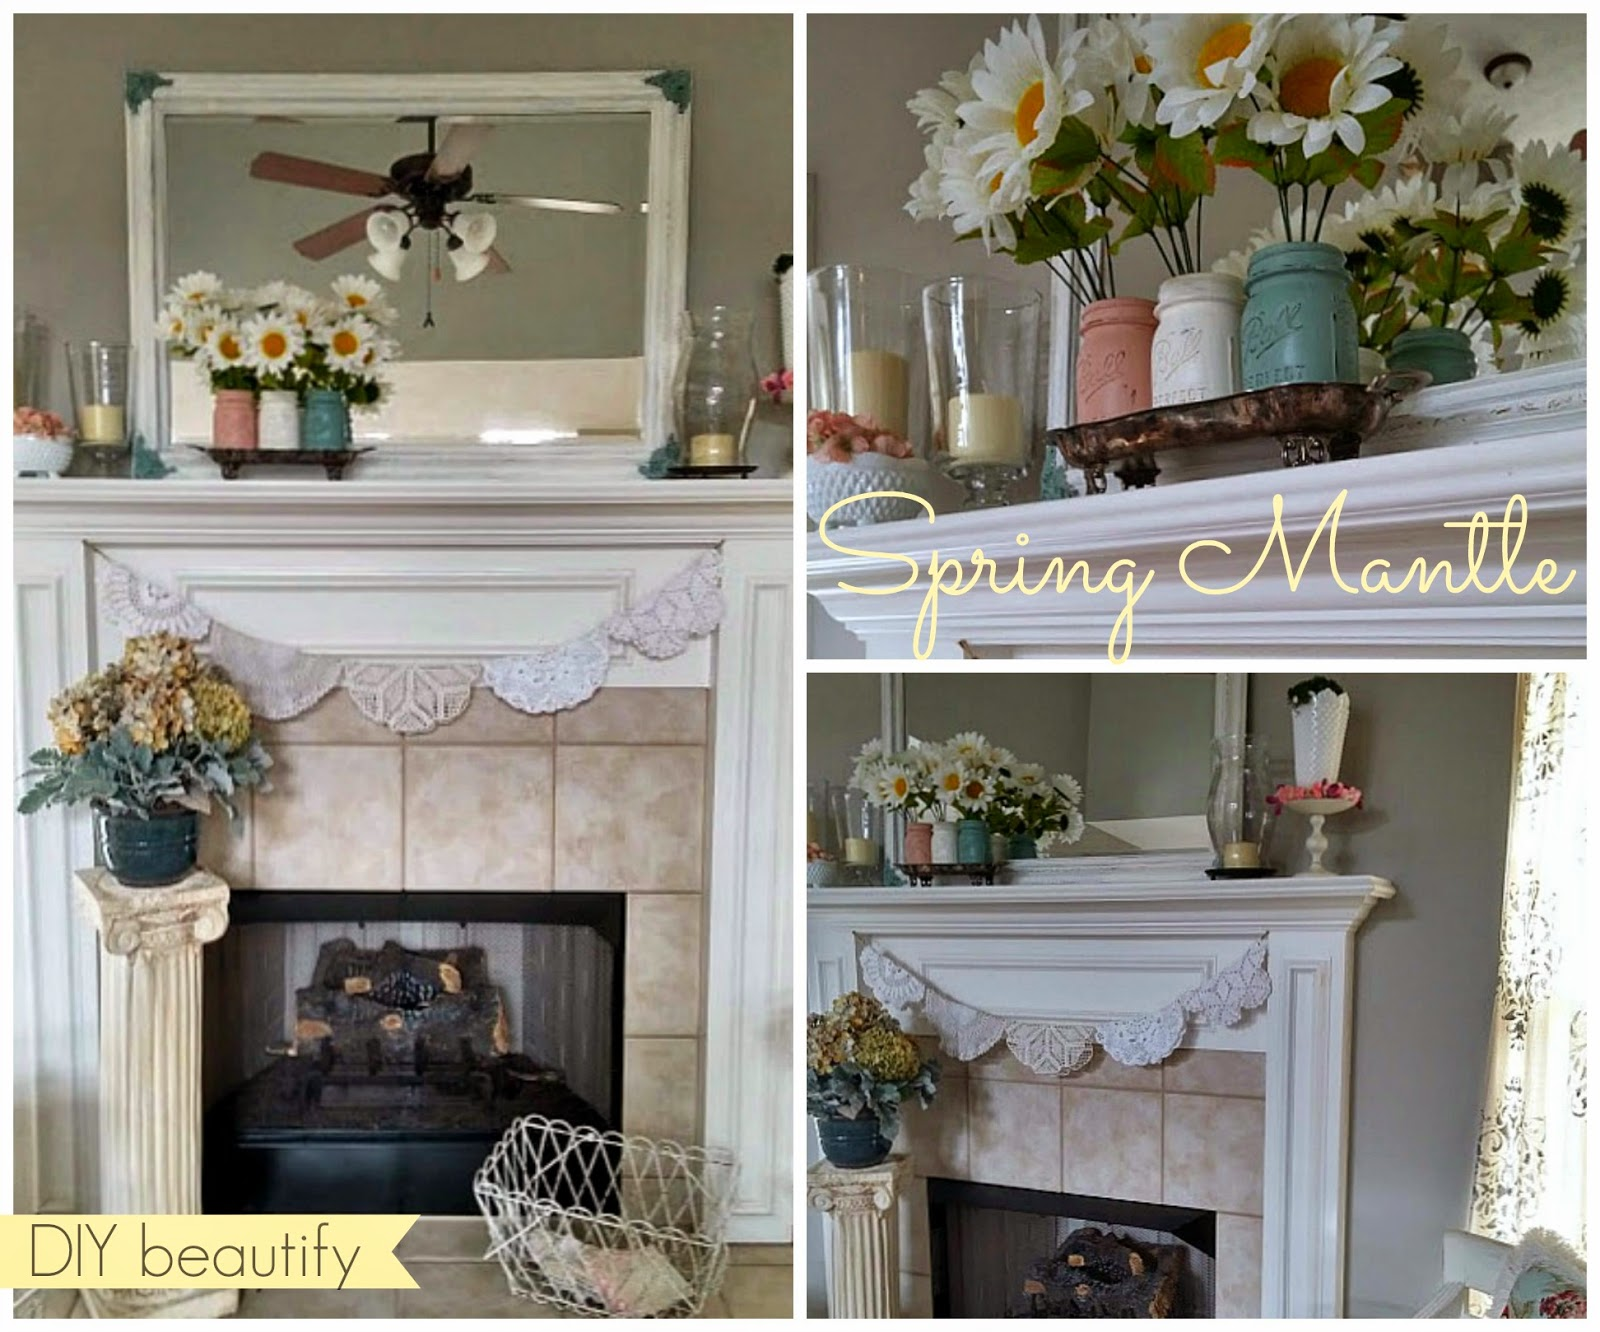 Spring Mantle with Vintage Doily Bunting www.diybeautify.com